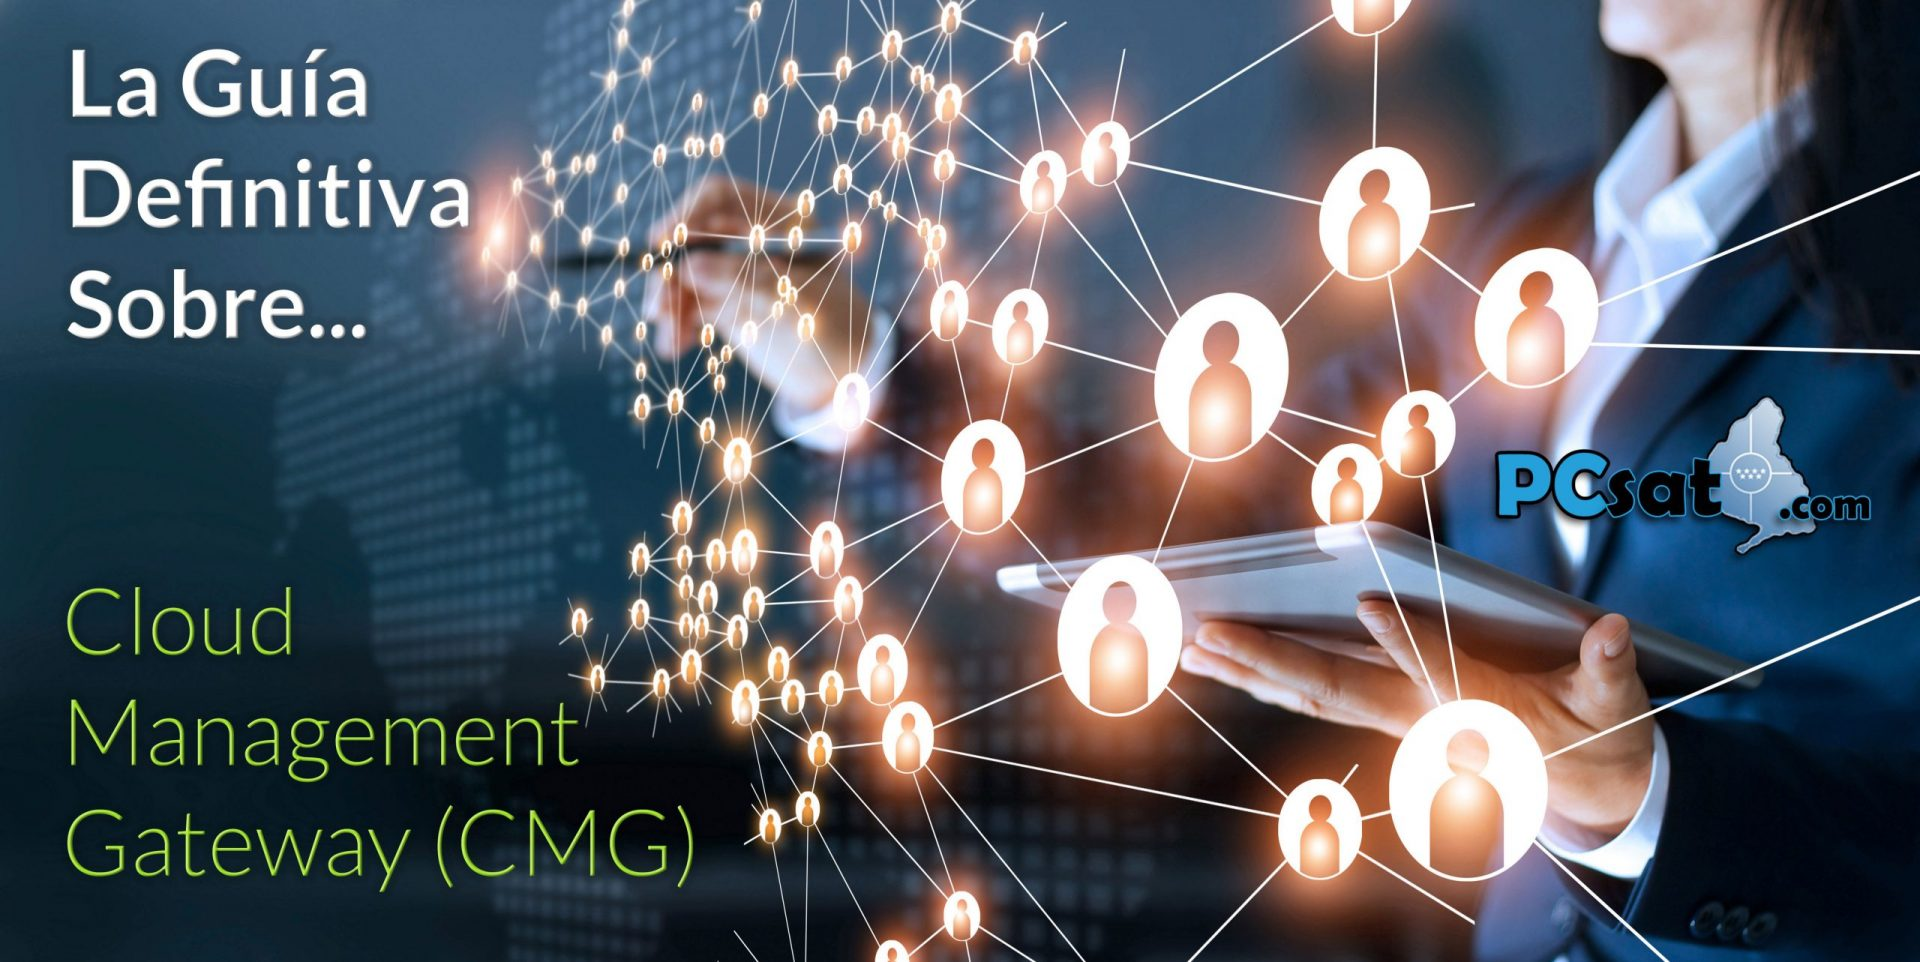 Guía Definitiva Para Configurar Cloud Management Gateway Paso a Paso (CMG)